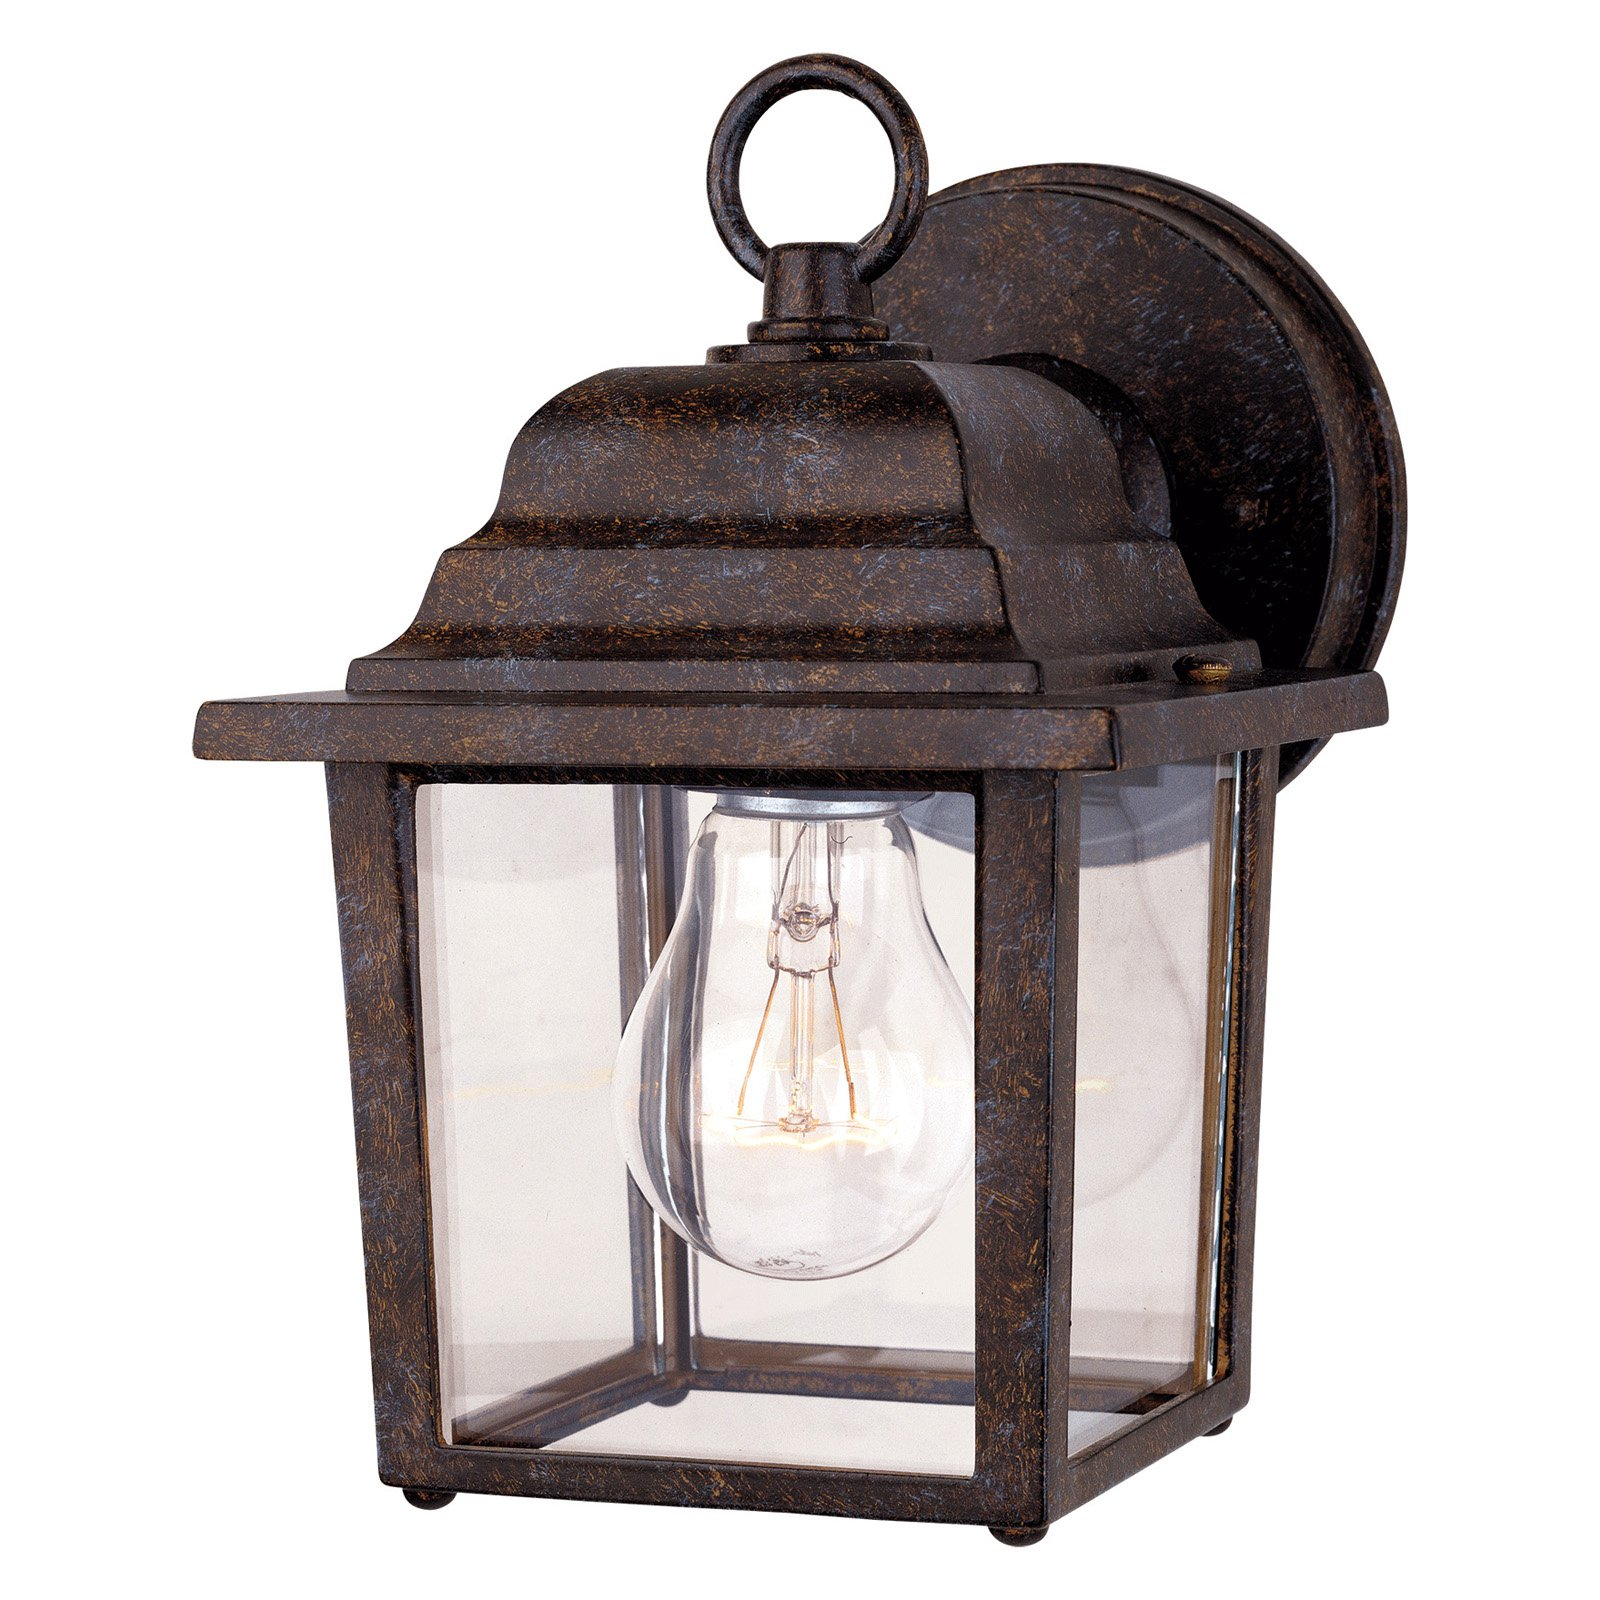 Savoy House Exterior 5-3045-72 Outdoor Wall Lantern